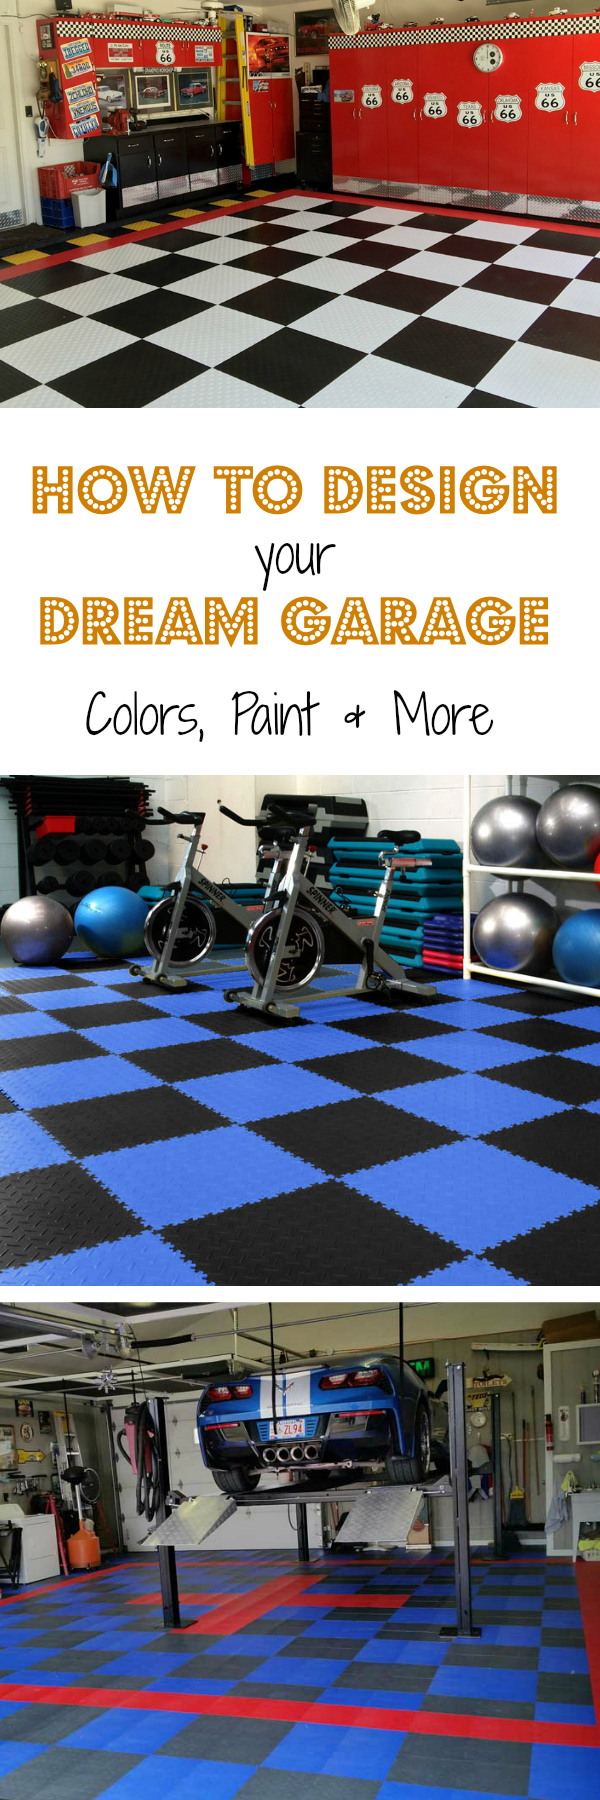 How to Design Your Dream Garage: Colors, Paint and More. See your vision become a reality when you choose the perfect color scheme for your man cave.